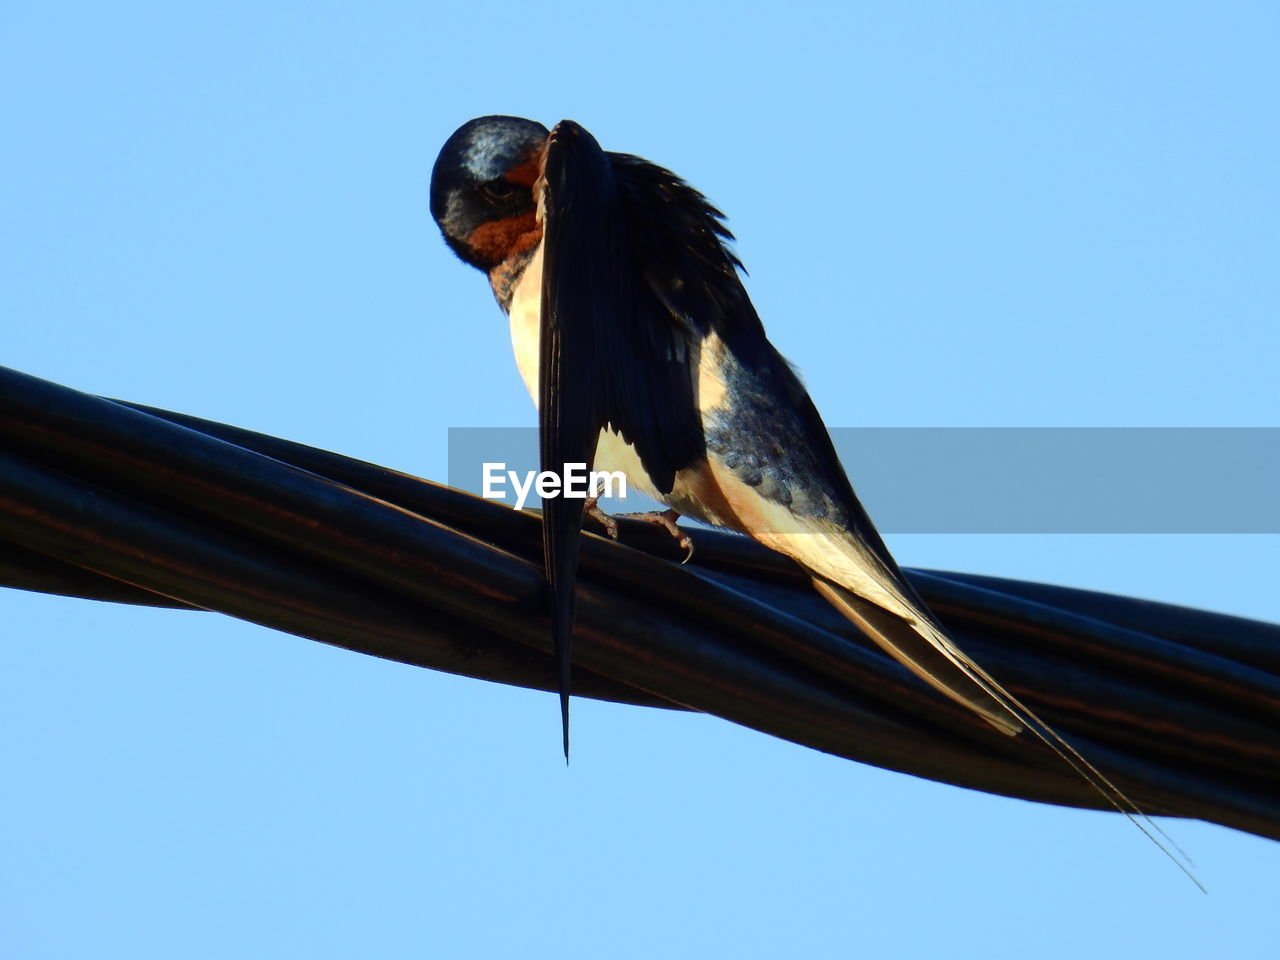 low angle view, clear sky, one animal, animal themes, animals in the wild, bird, blue, animal wildlife, day, perching, no people, outdoors, sky, close-up, nature